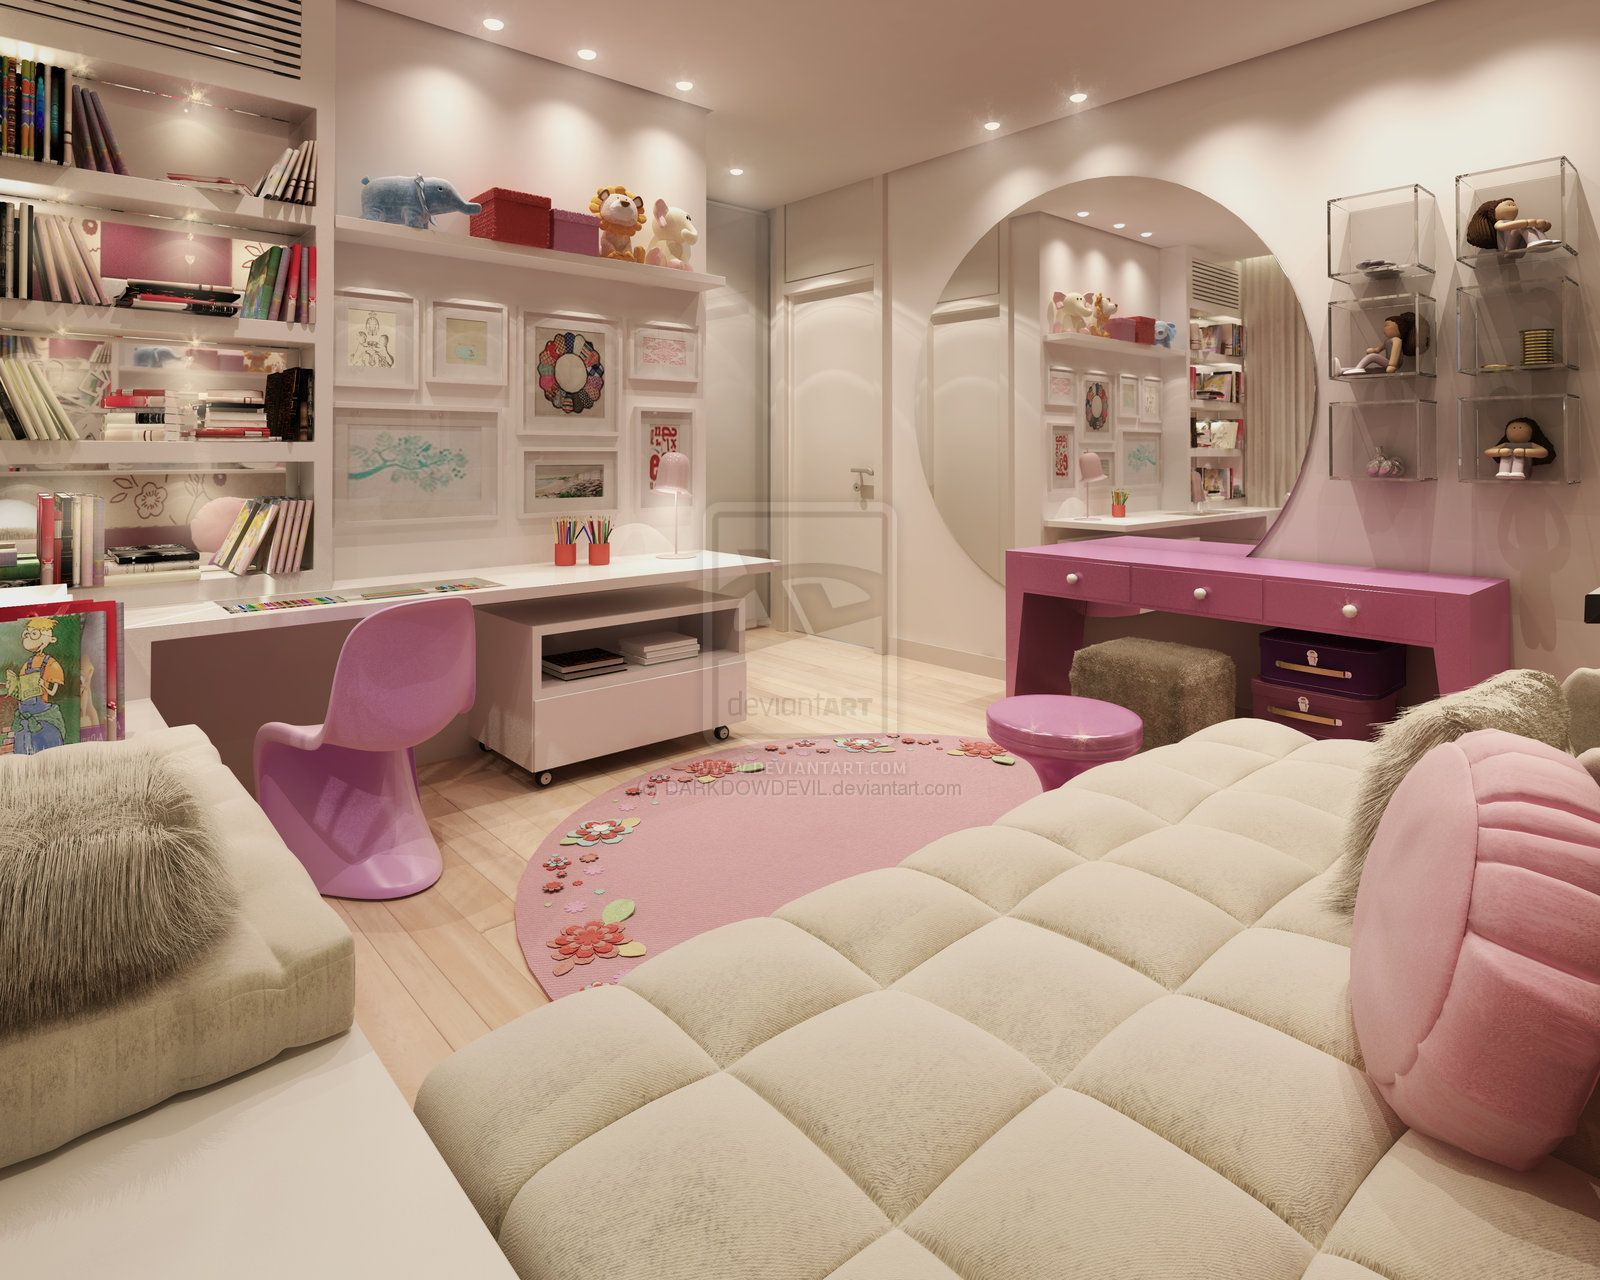 Teen Room Design Ideas 30 dream interior design ideas for teenage girls rooms 30 Dream Interior Design Ideas For Teenage Girls Rooms